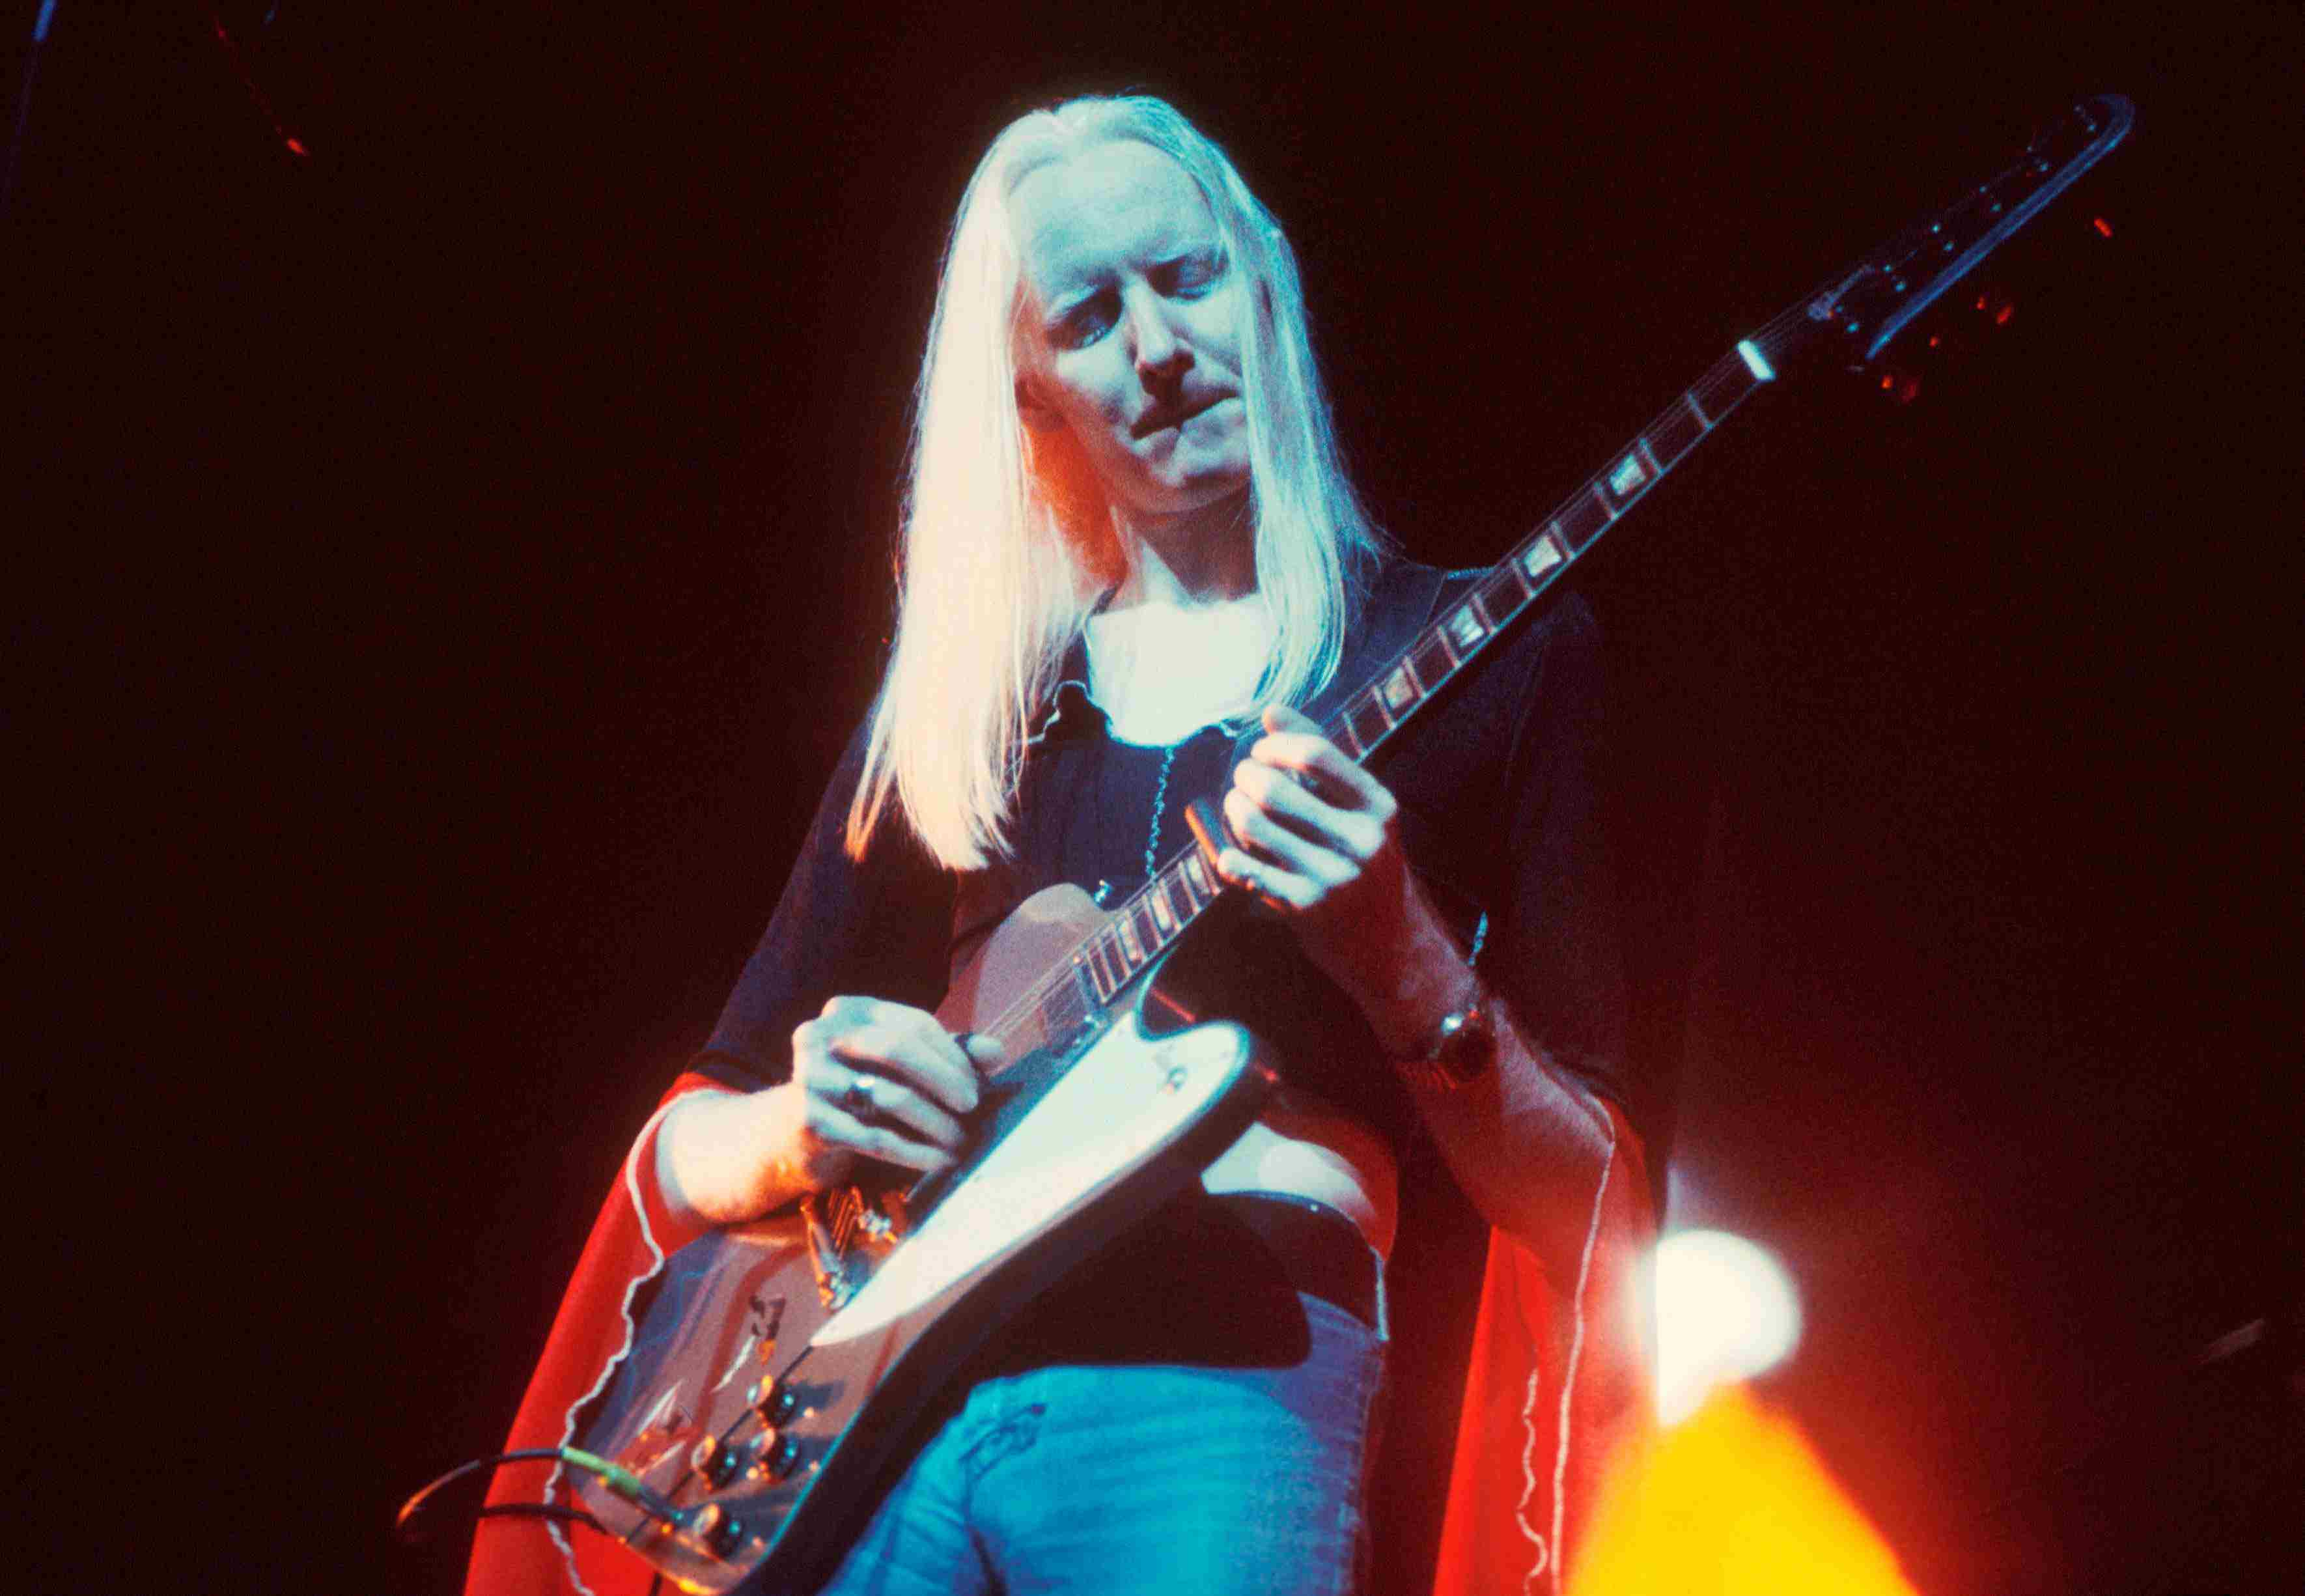 Johnny Winter playing guitar